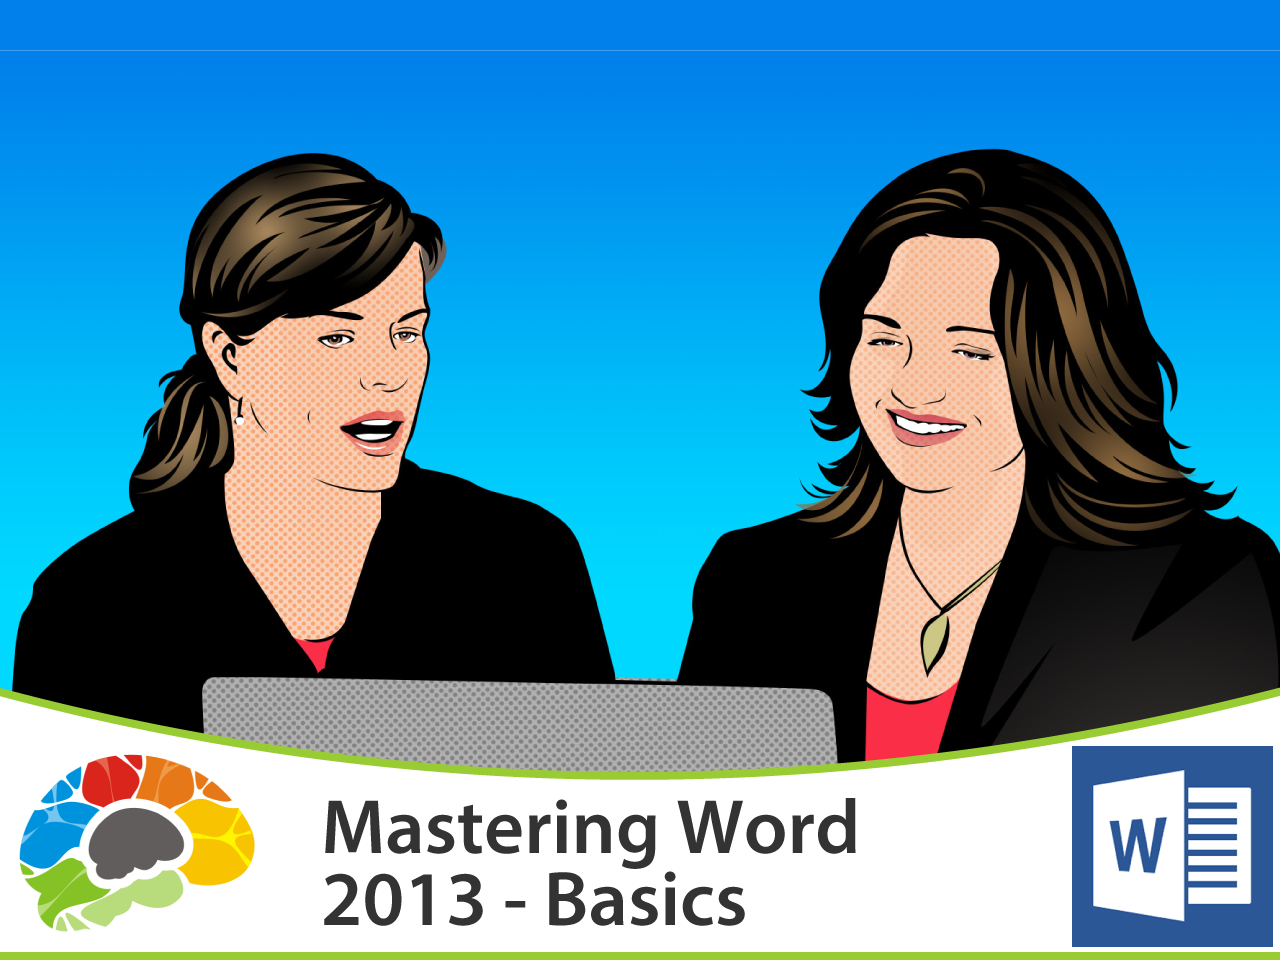 Mastering Word 2013, Singapore elarning online course